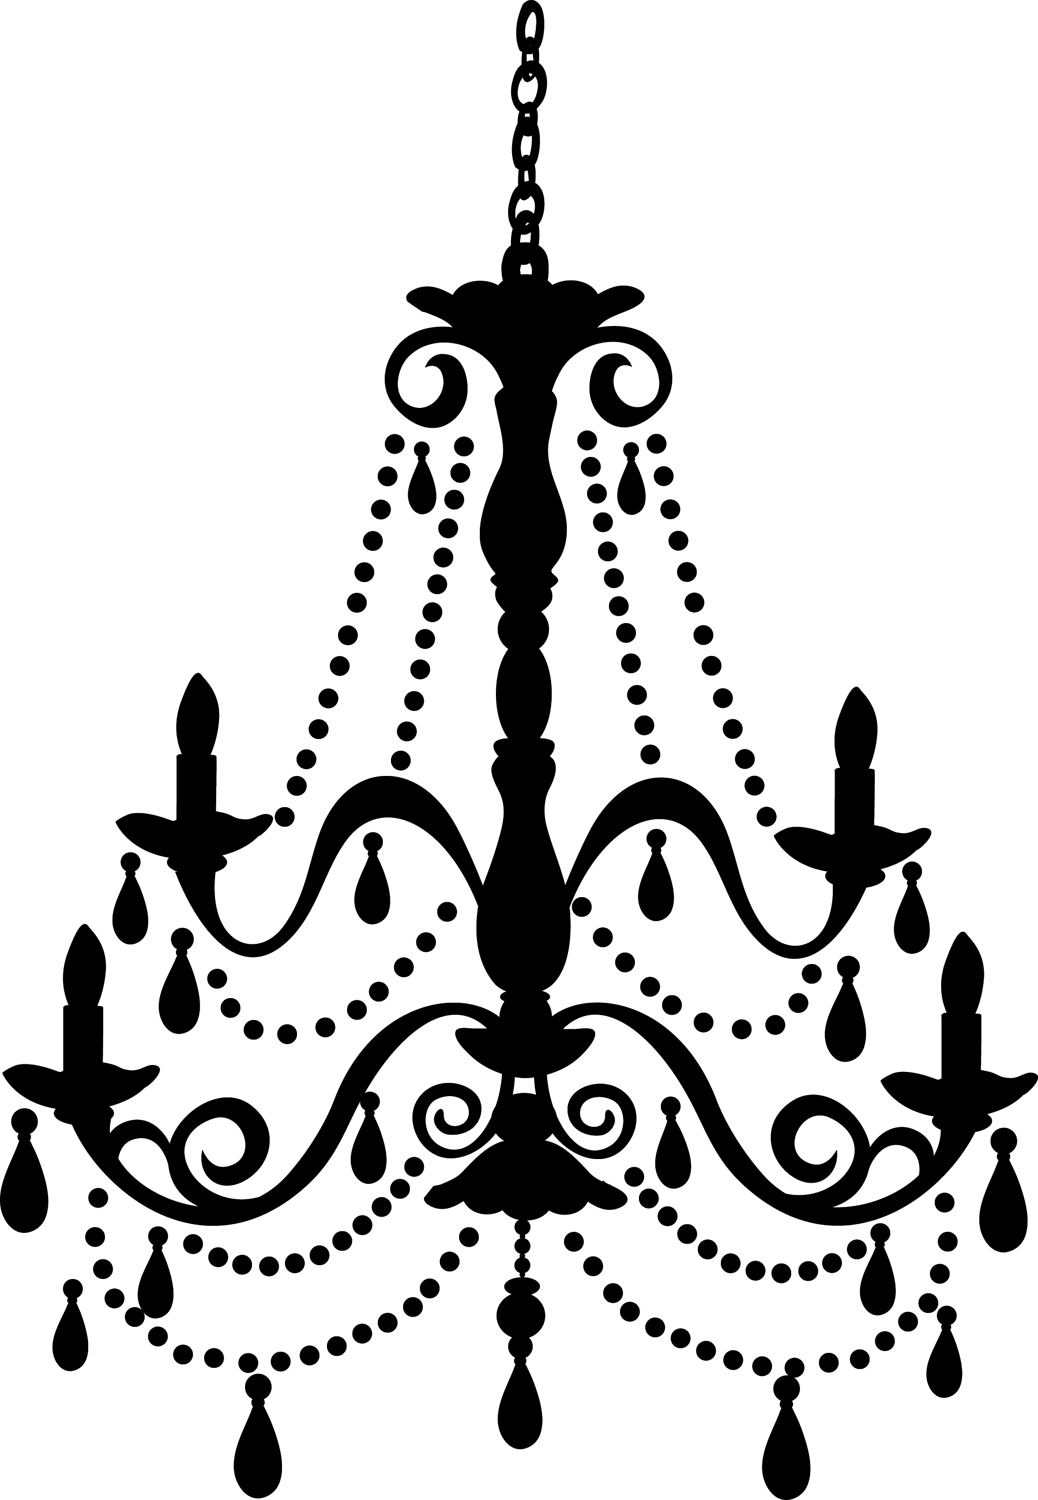 Chandelier clipart free silhouette svg transparent download Free Old Chandelier Cliparts, Download Free Clip Art, Free Clip Art ... svg transparent download